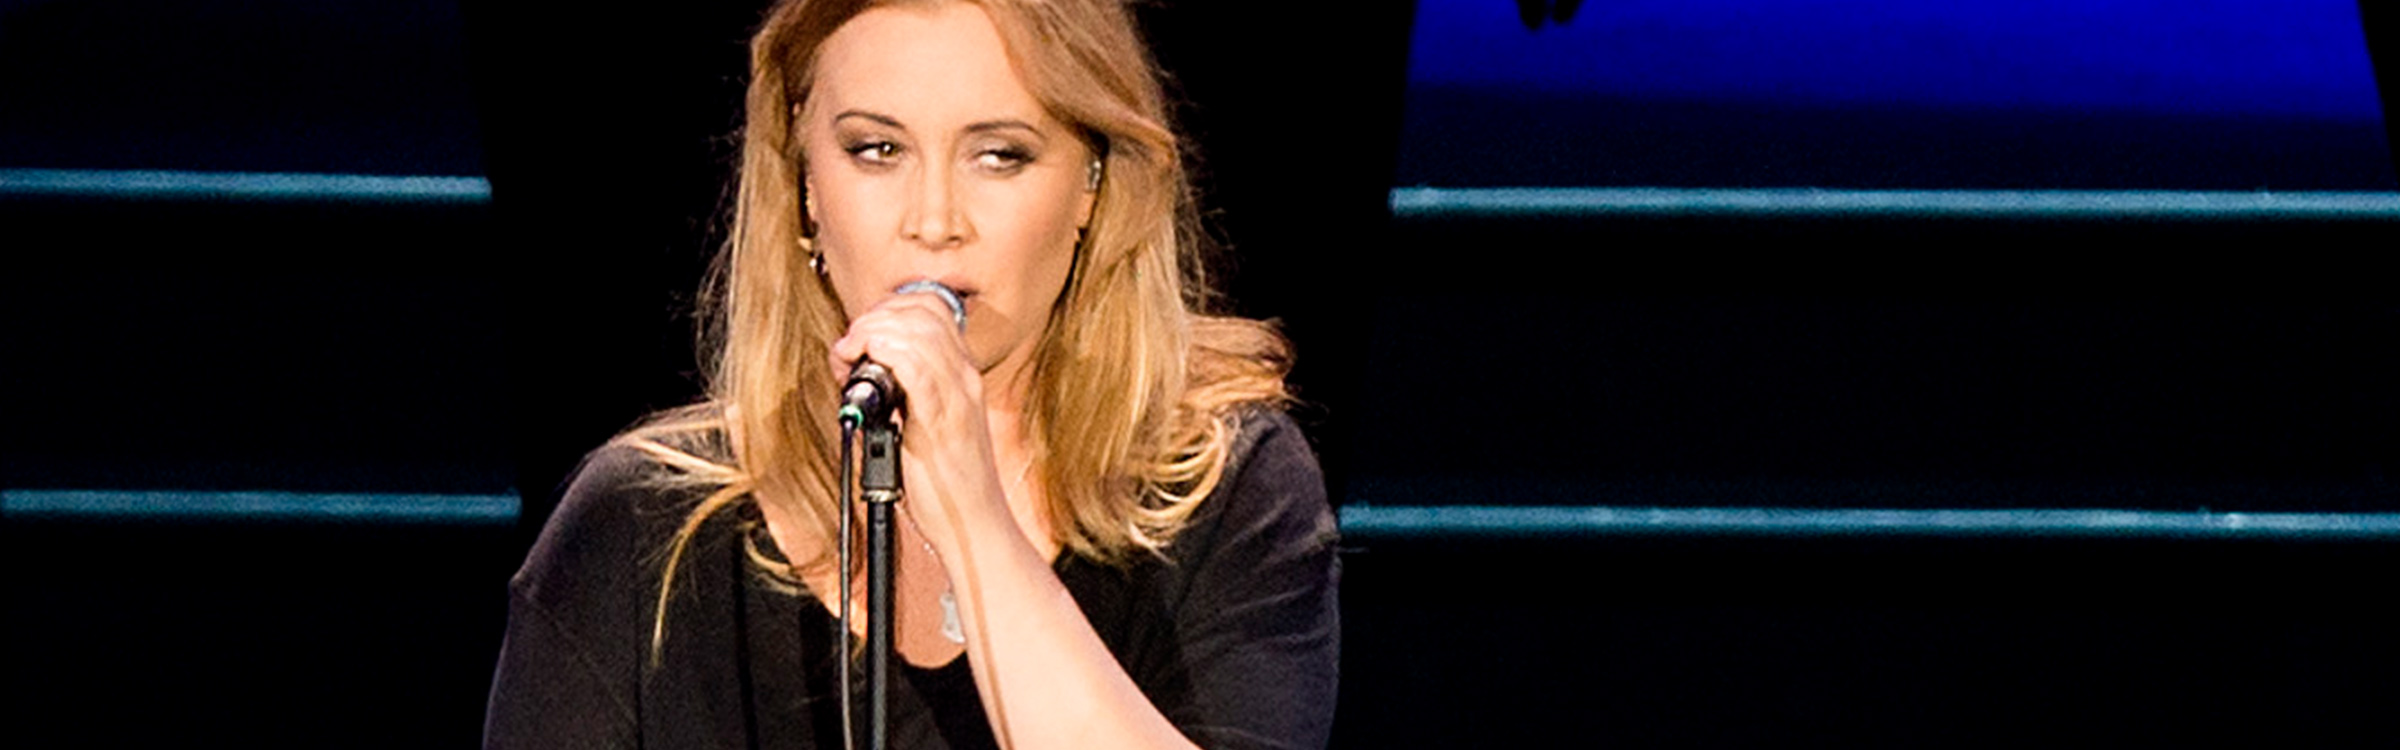 Anouk youtube header